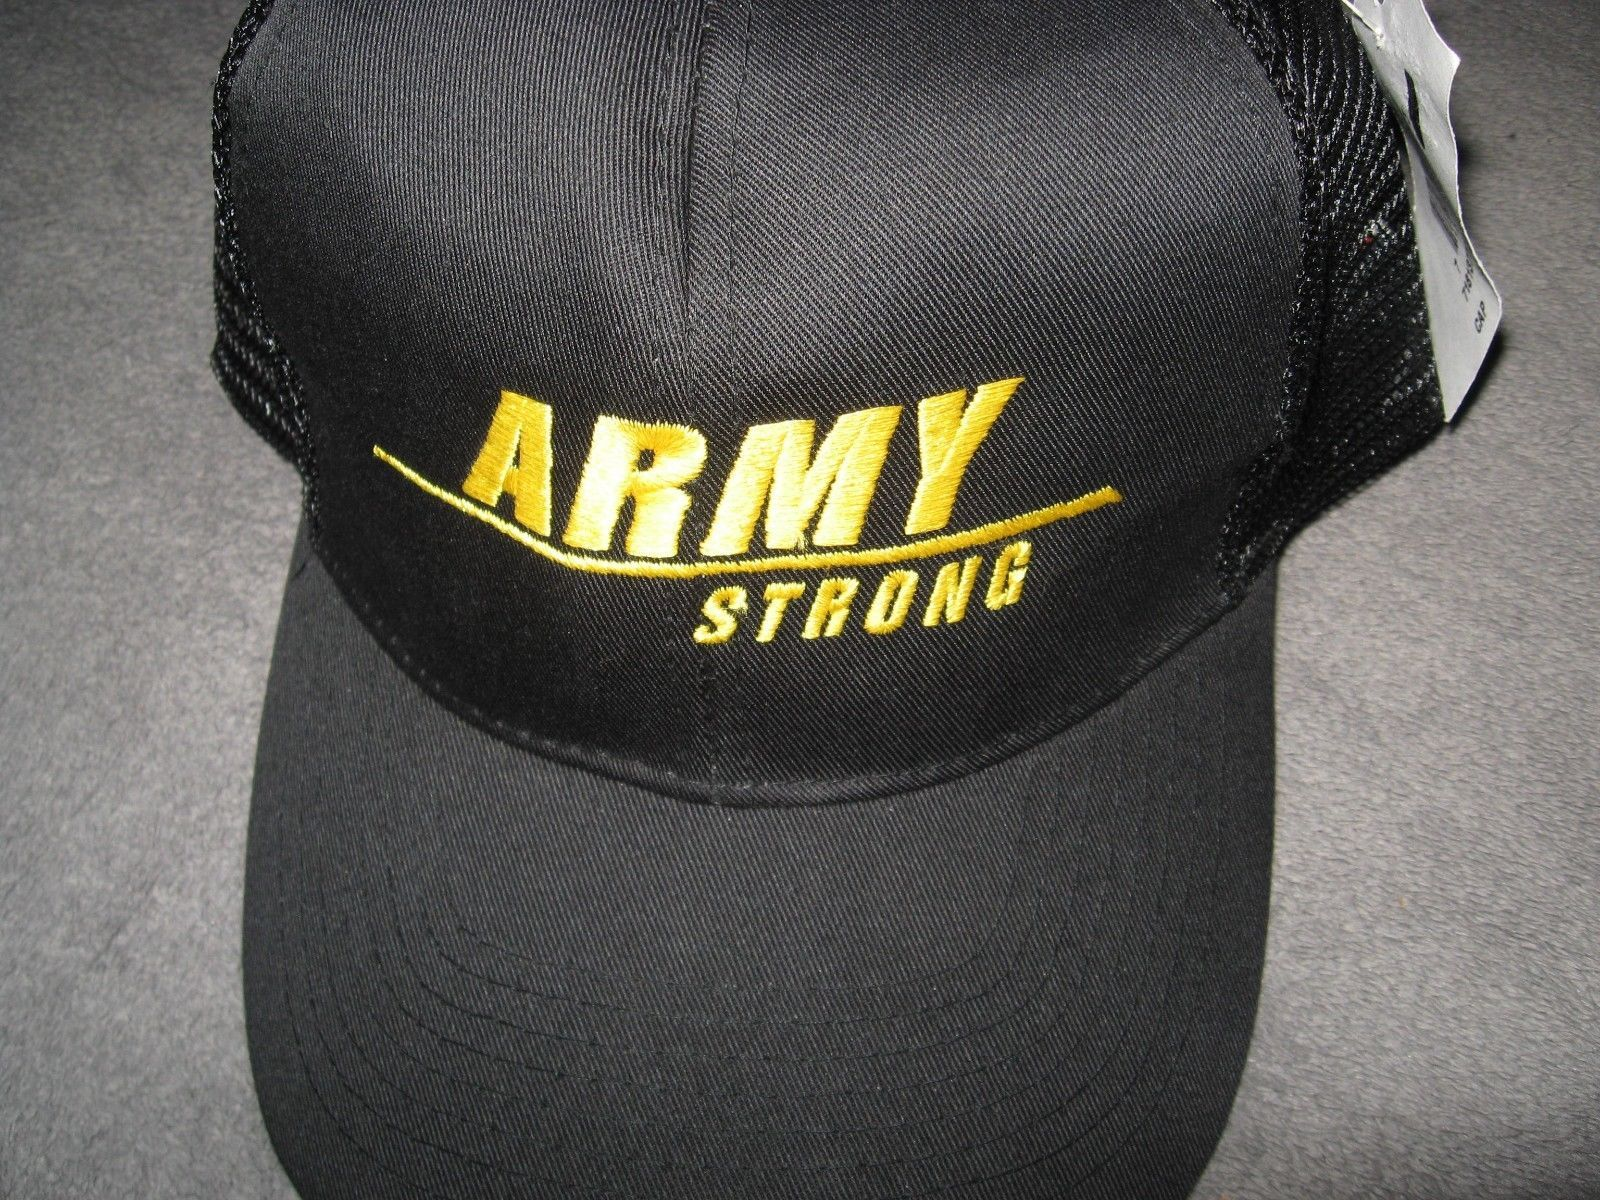 USA United States Army Strong Military Black Embroidered Mesh Back Baseball Cap